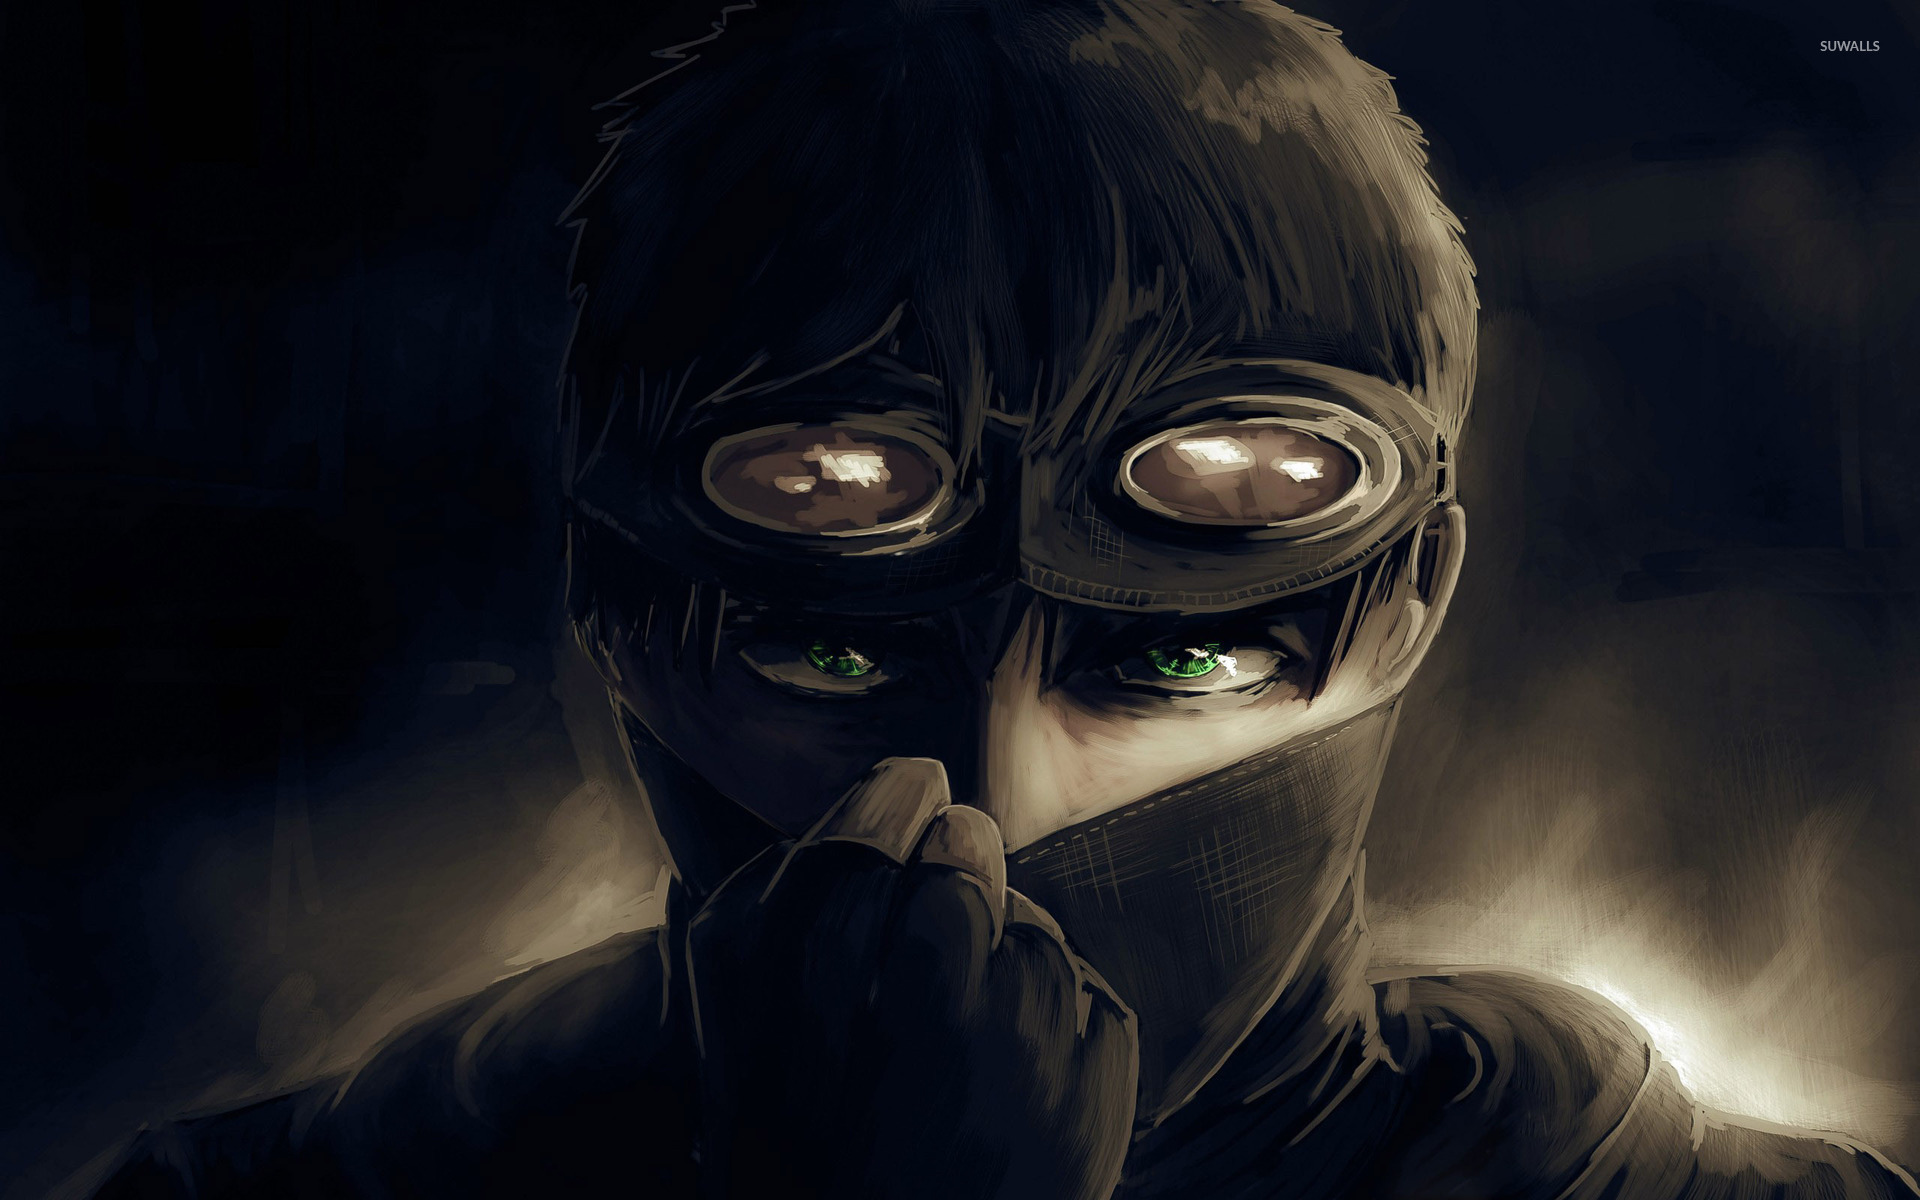 green eyed man with mask wallpaper digital art wallpapers 46736